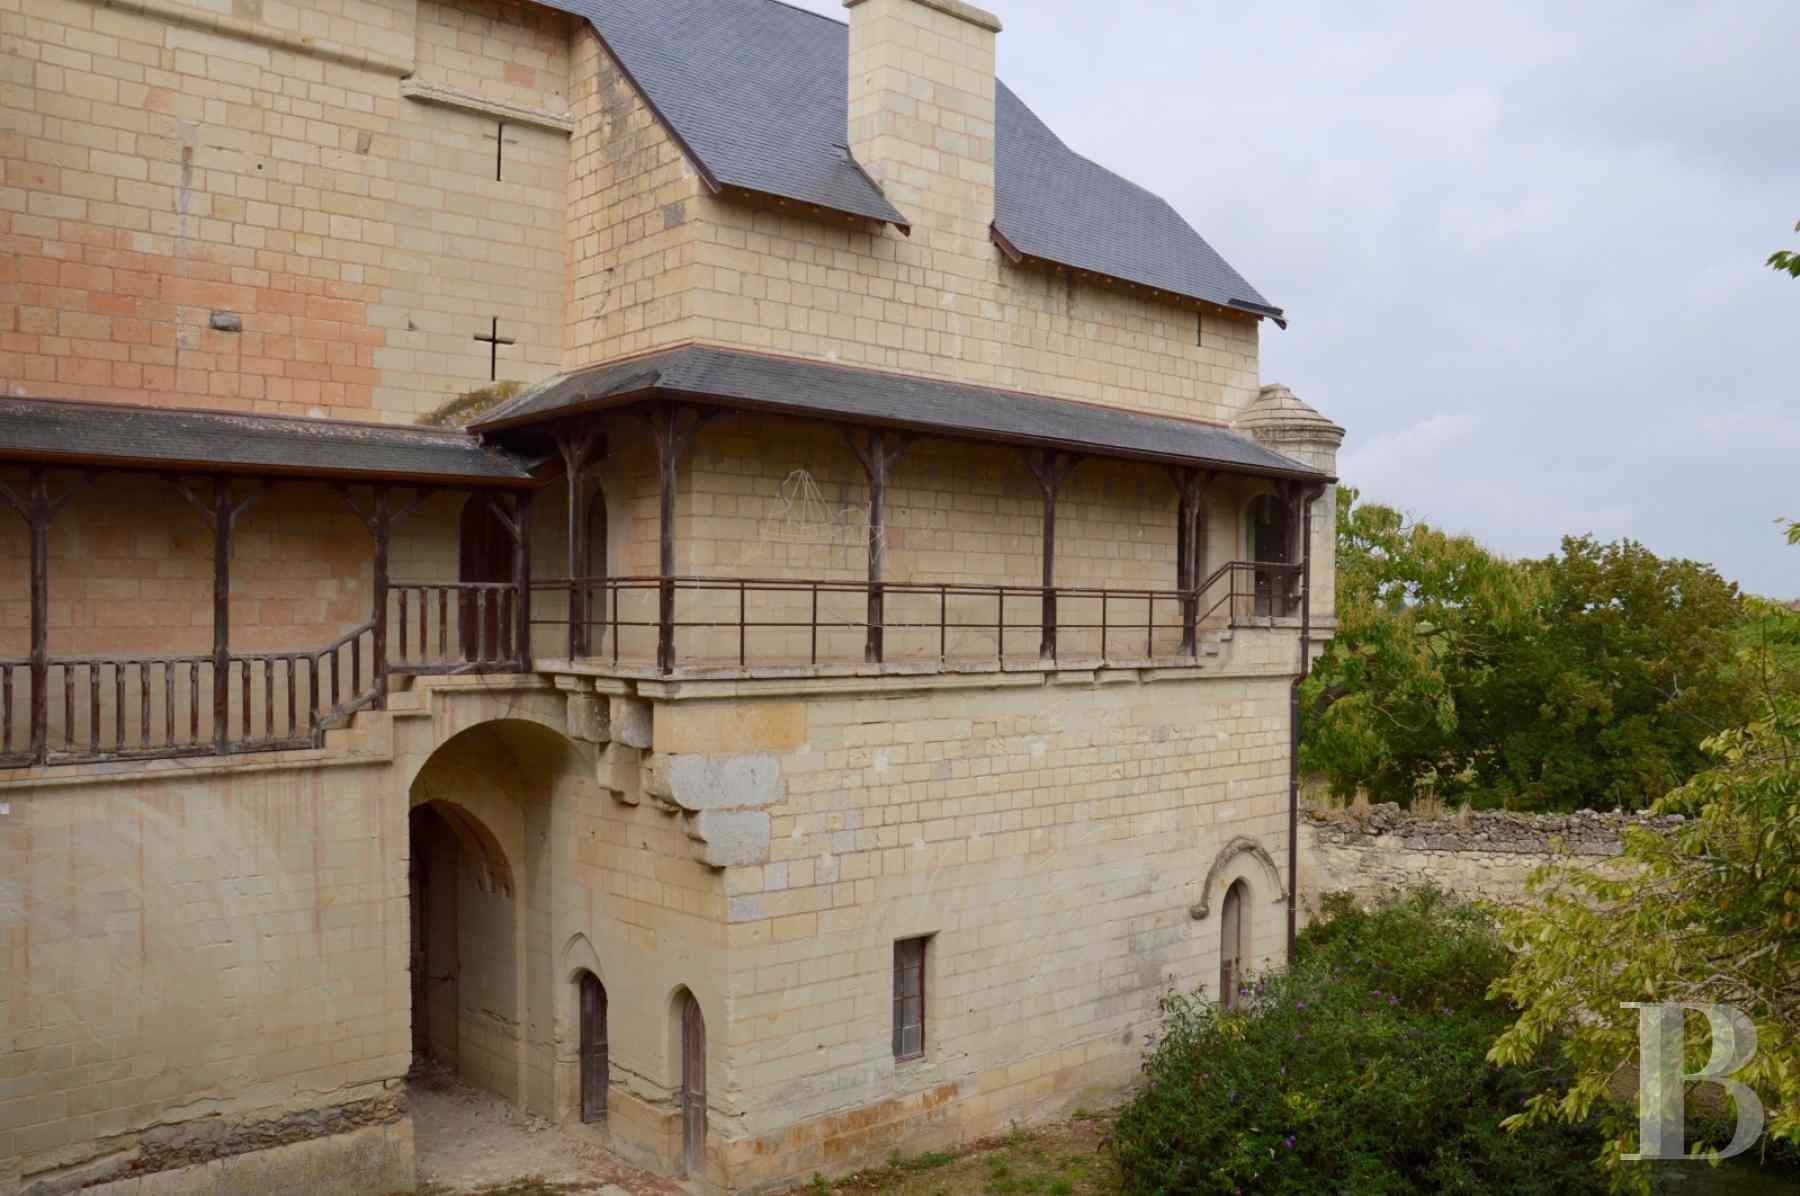 chateaux for sale France poitou charentes 12th century - 7 zoom